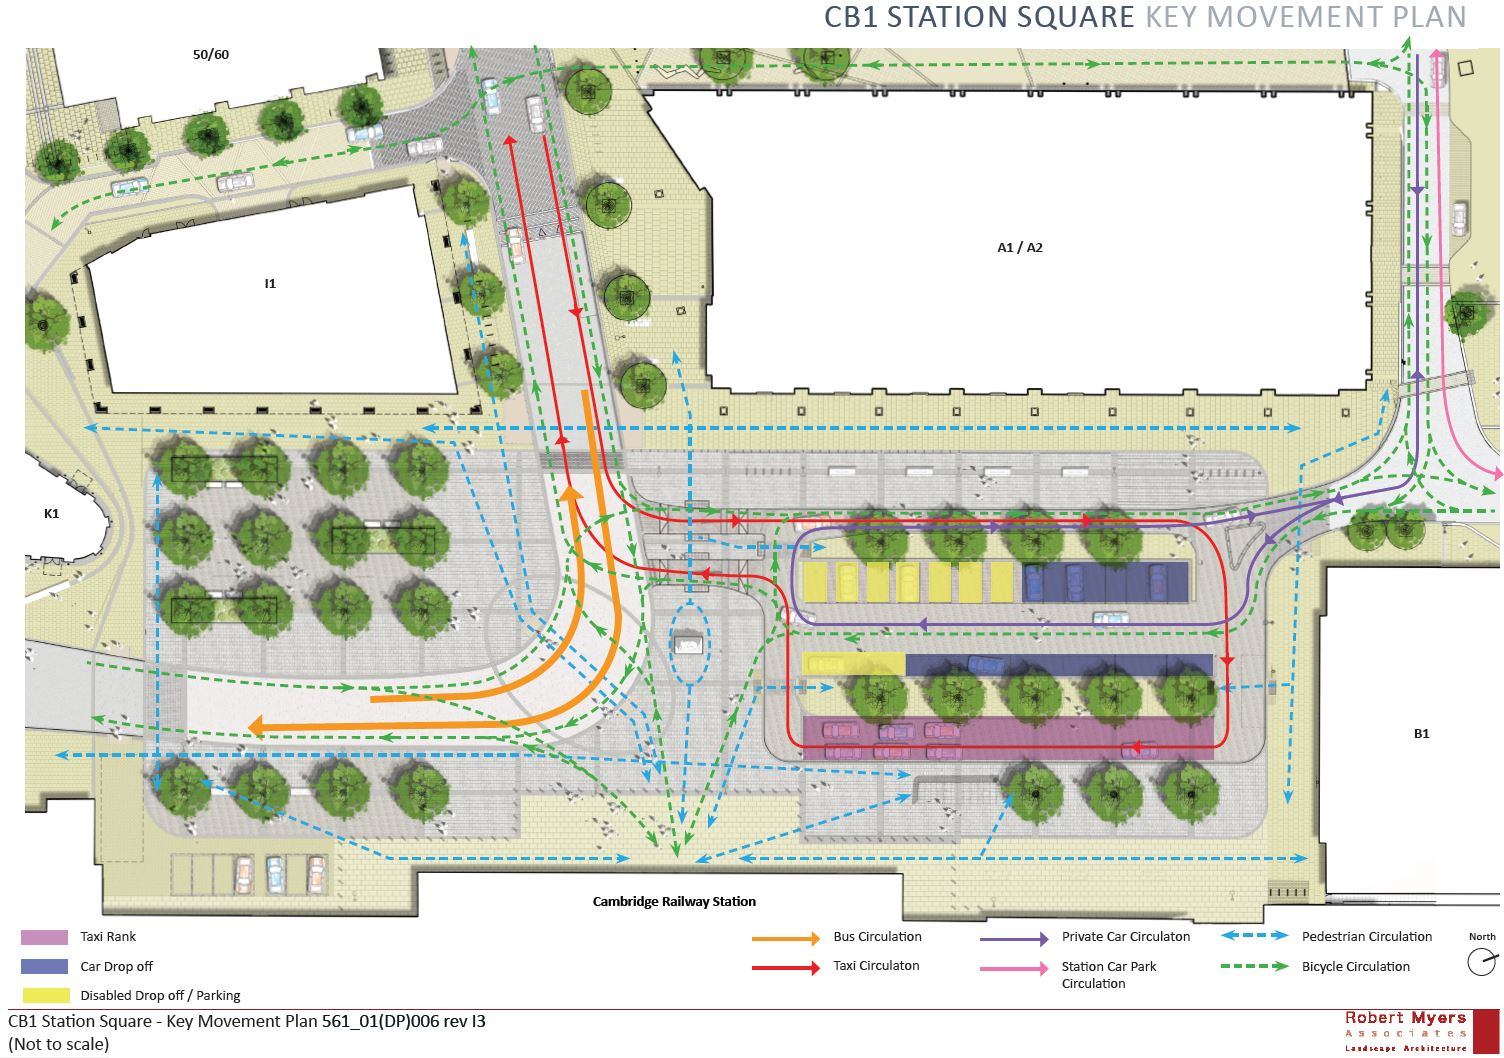 Station Square key movement plan